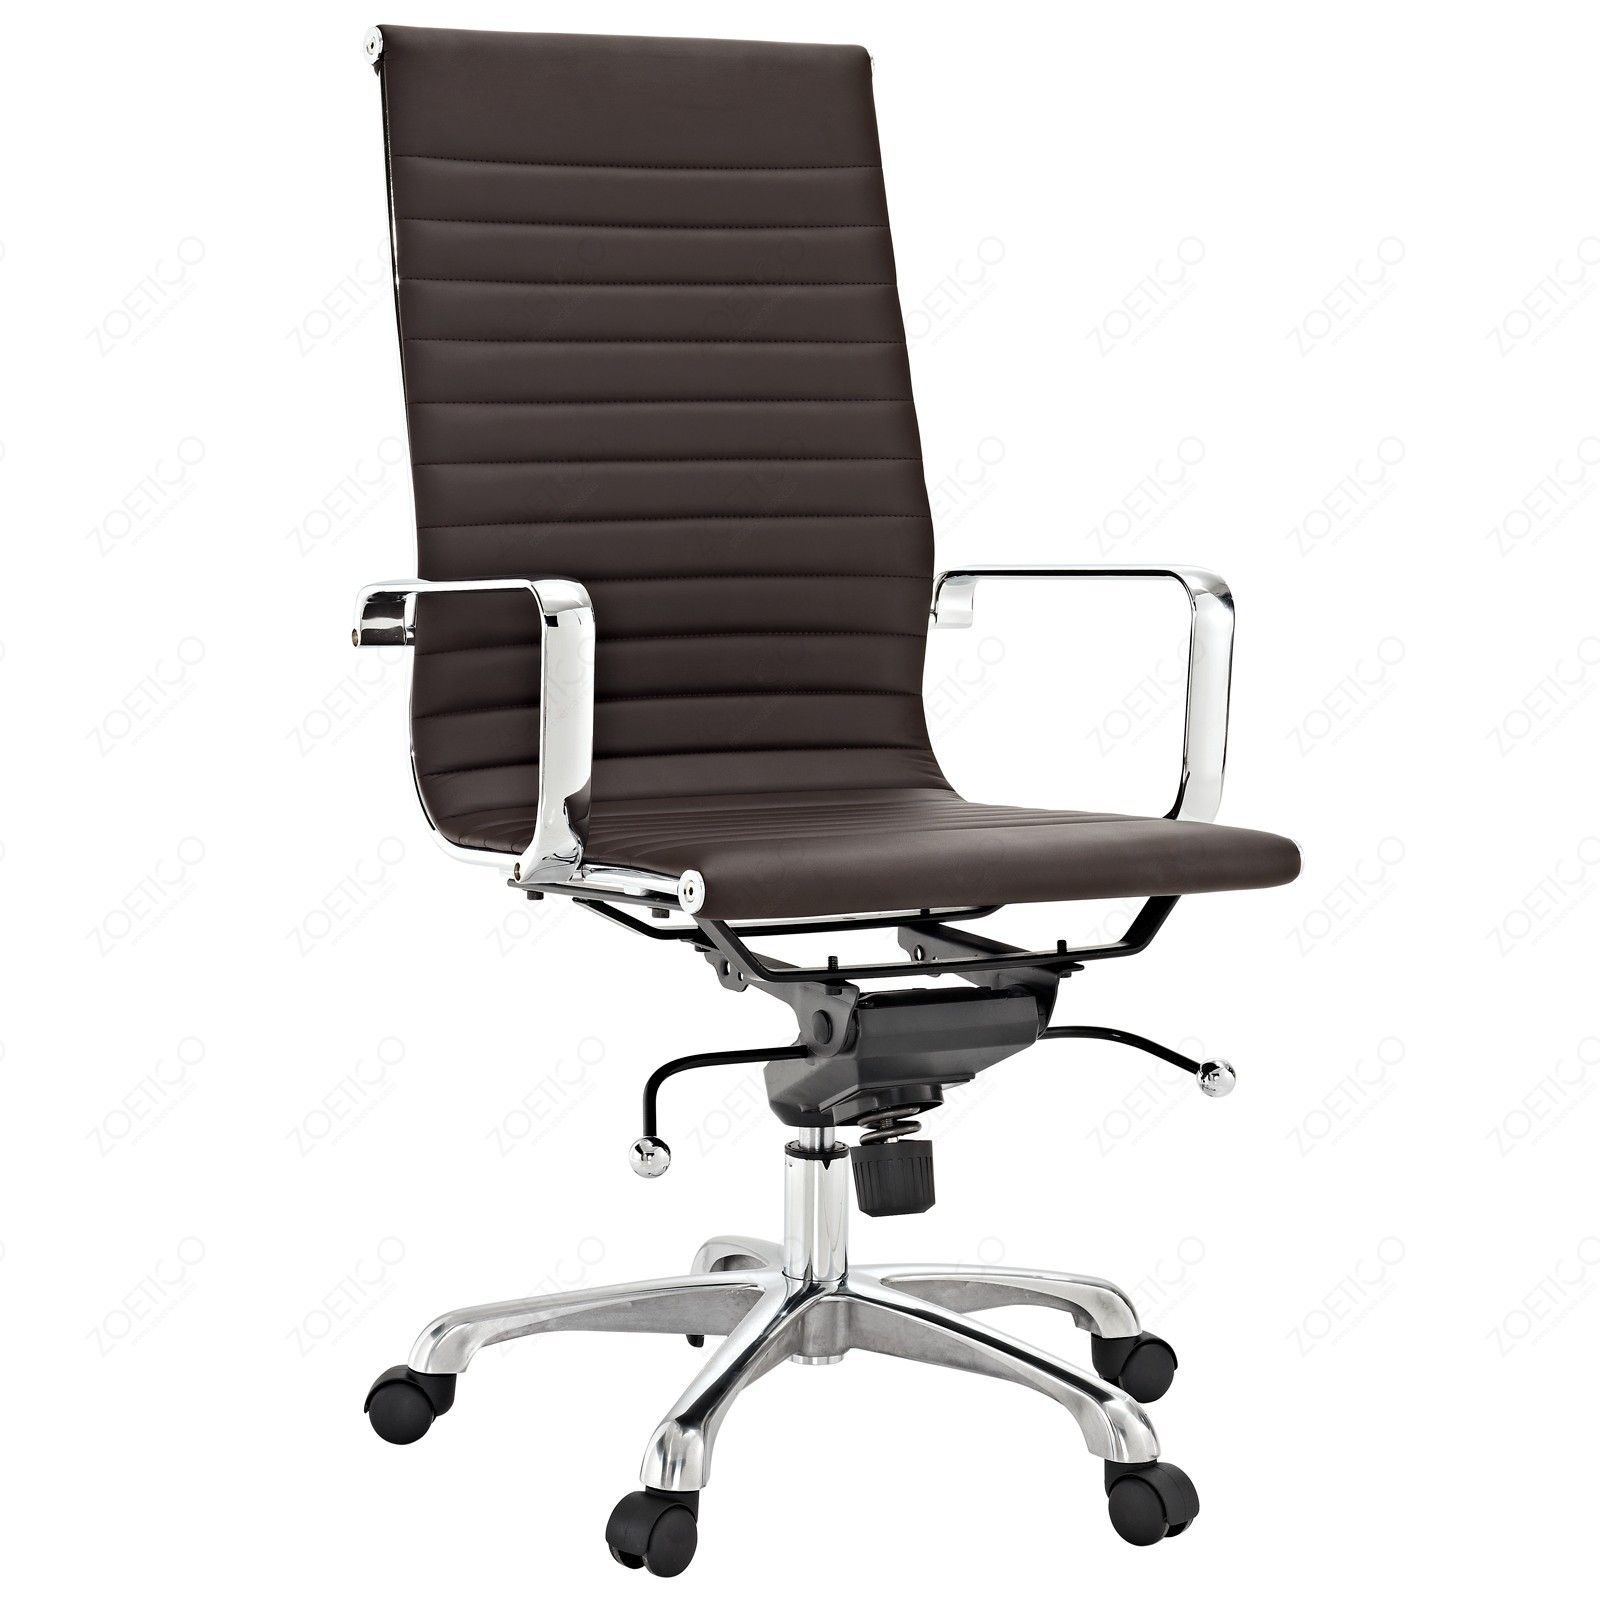 comfortable office chairs with eames high back office chair